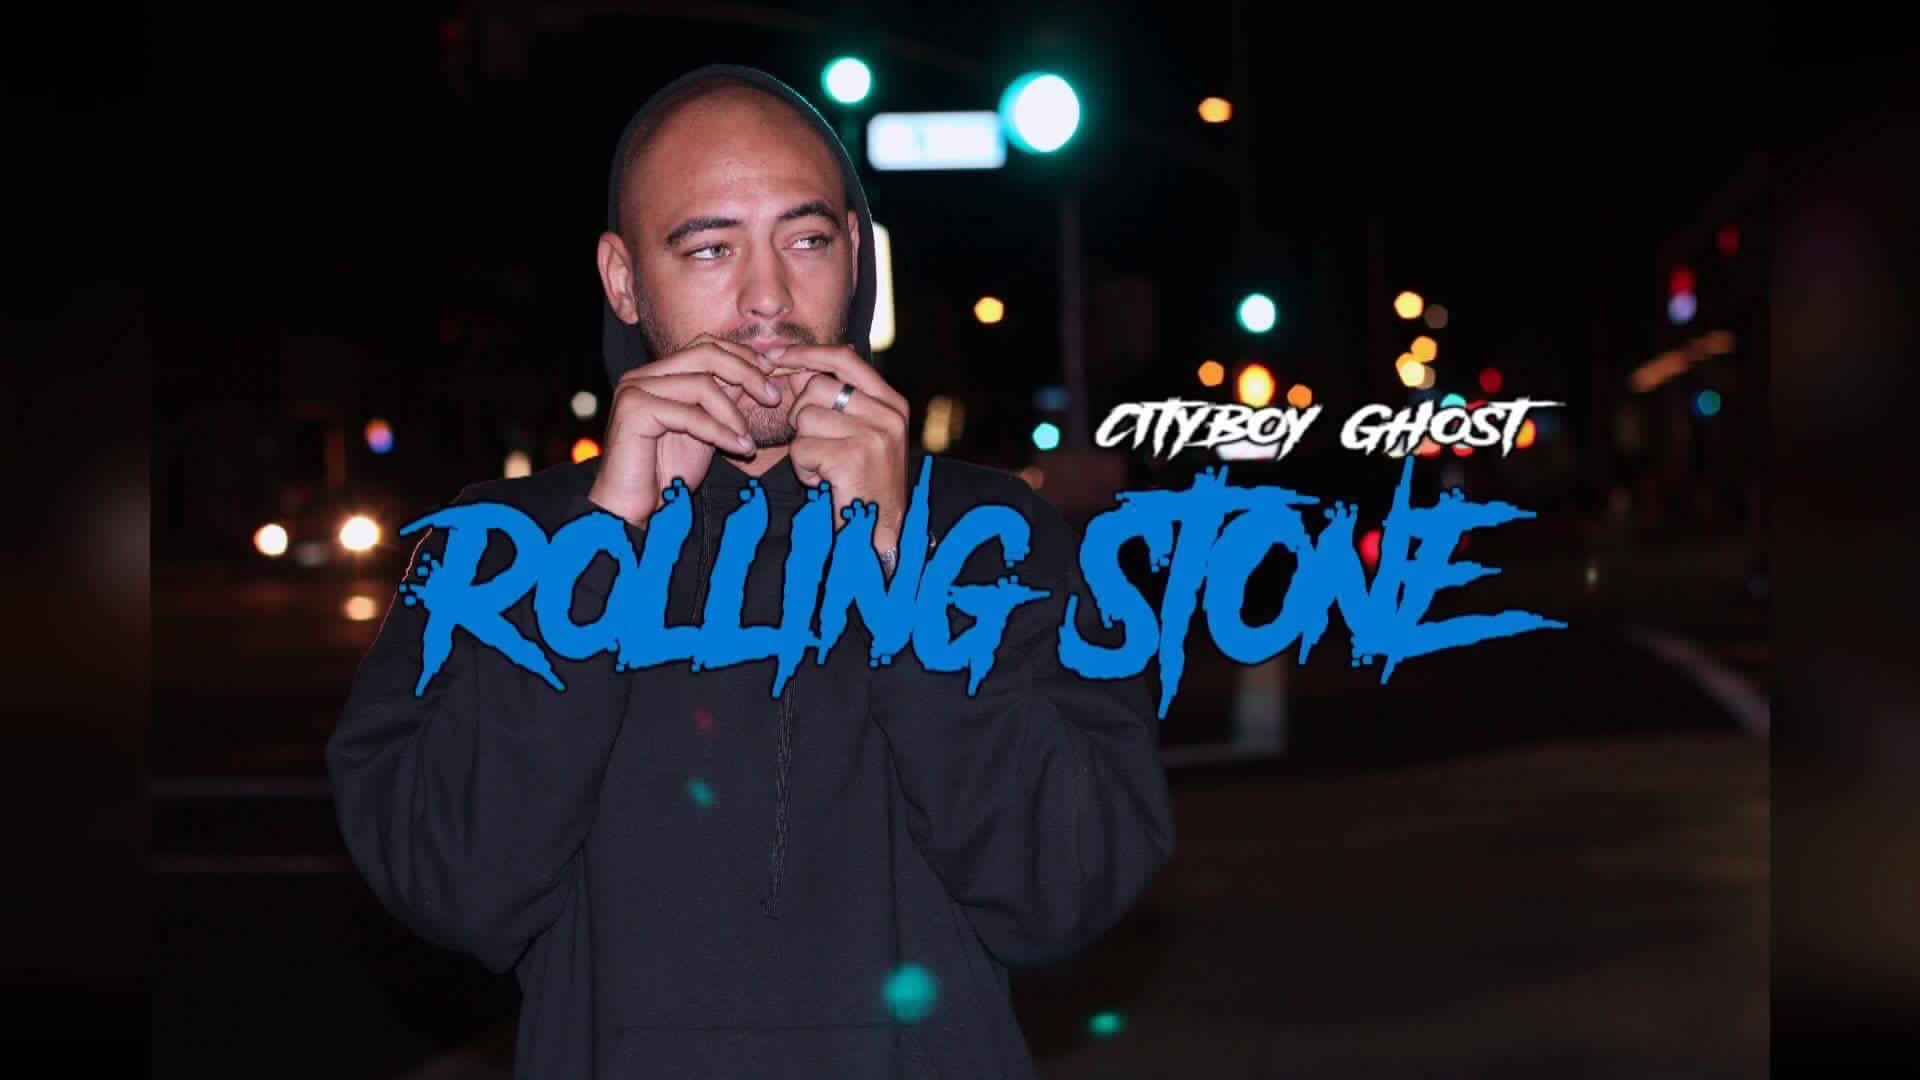 CityBoy Ghost - Rolling Stone